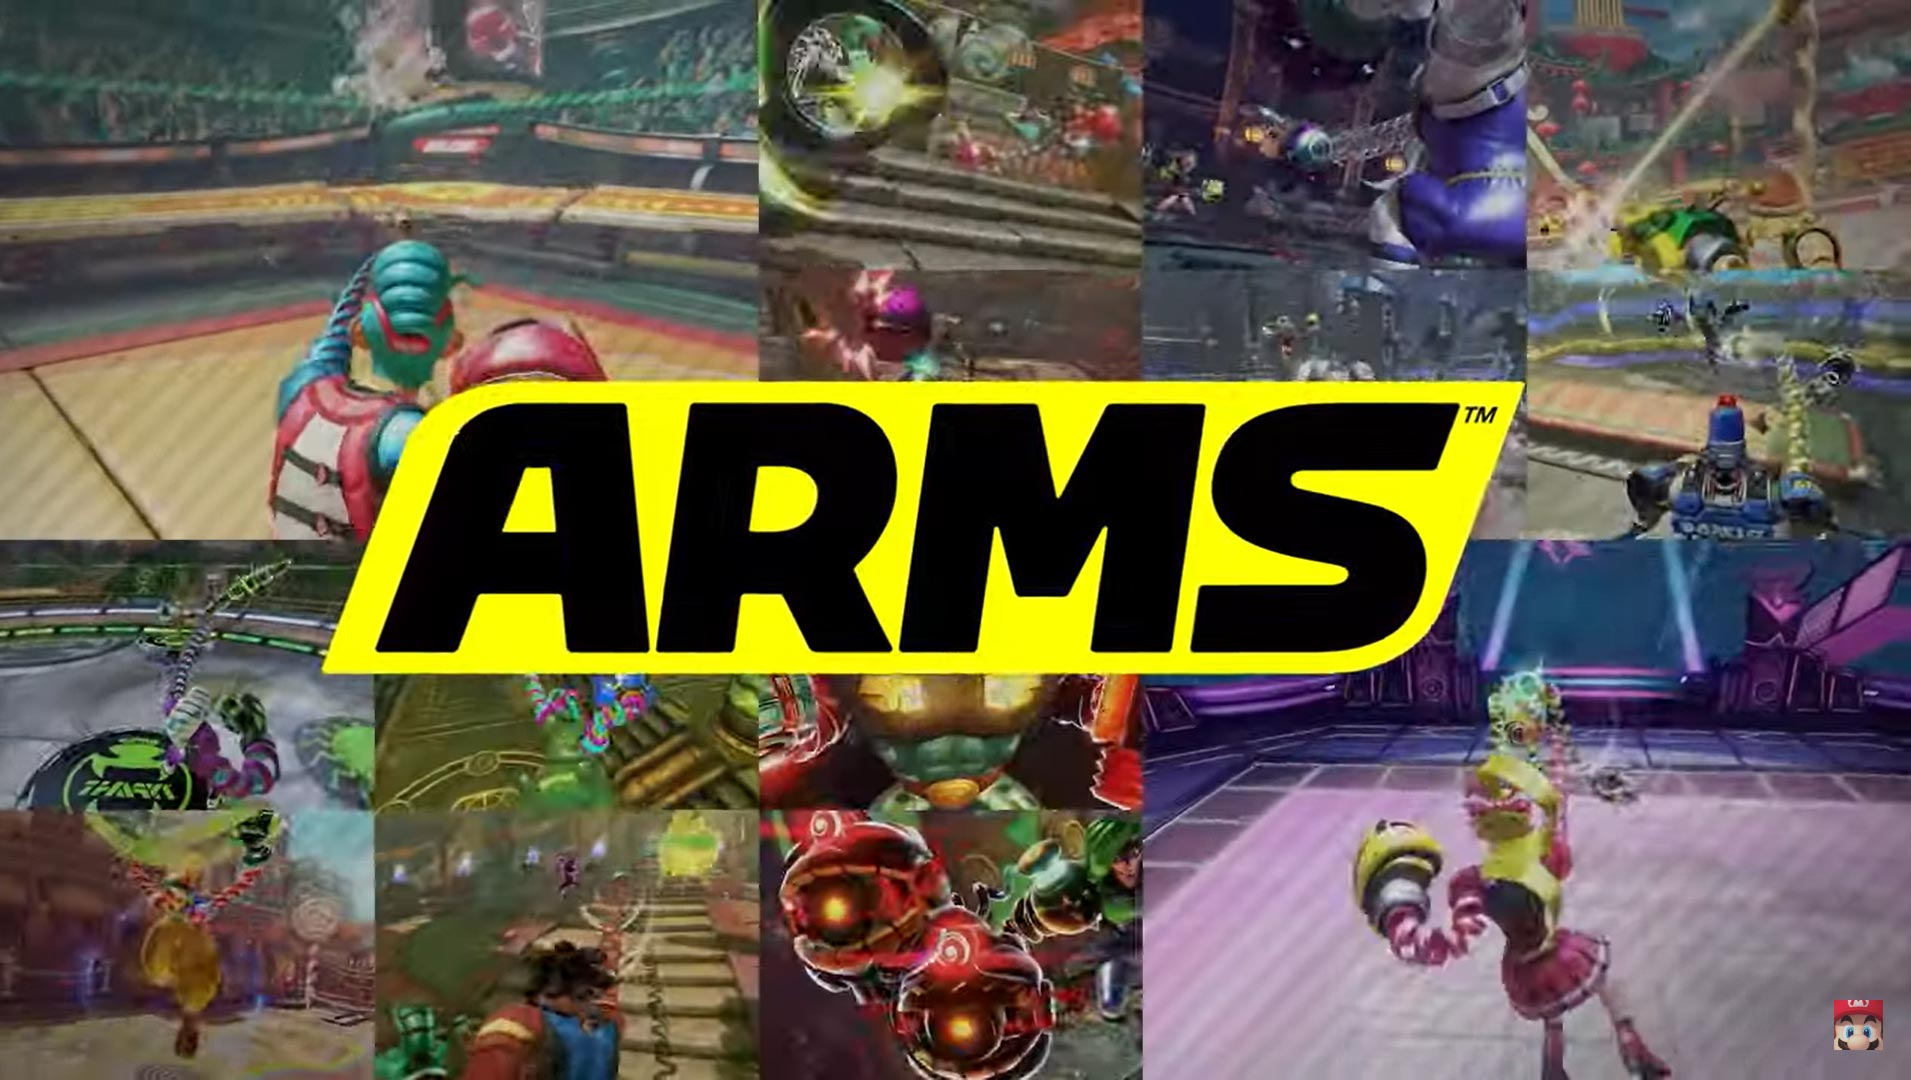 Super Smash Bros. Arms tease 1 out of 3 image gallery